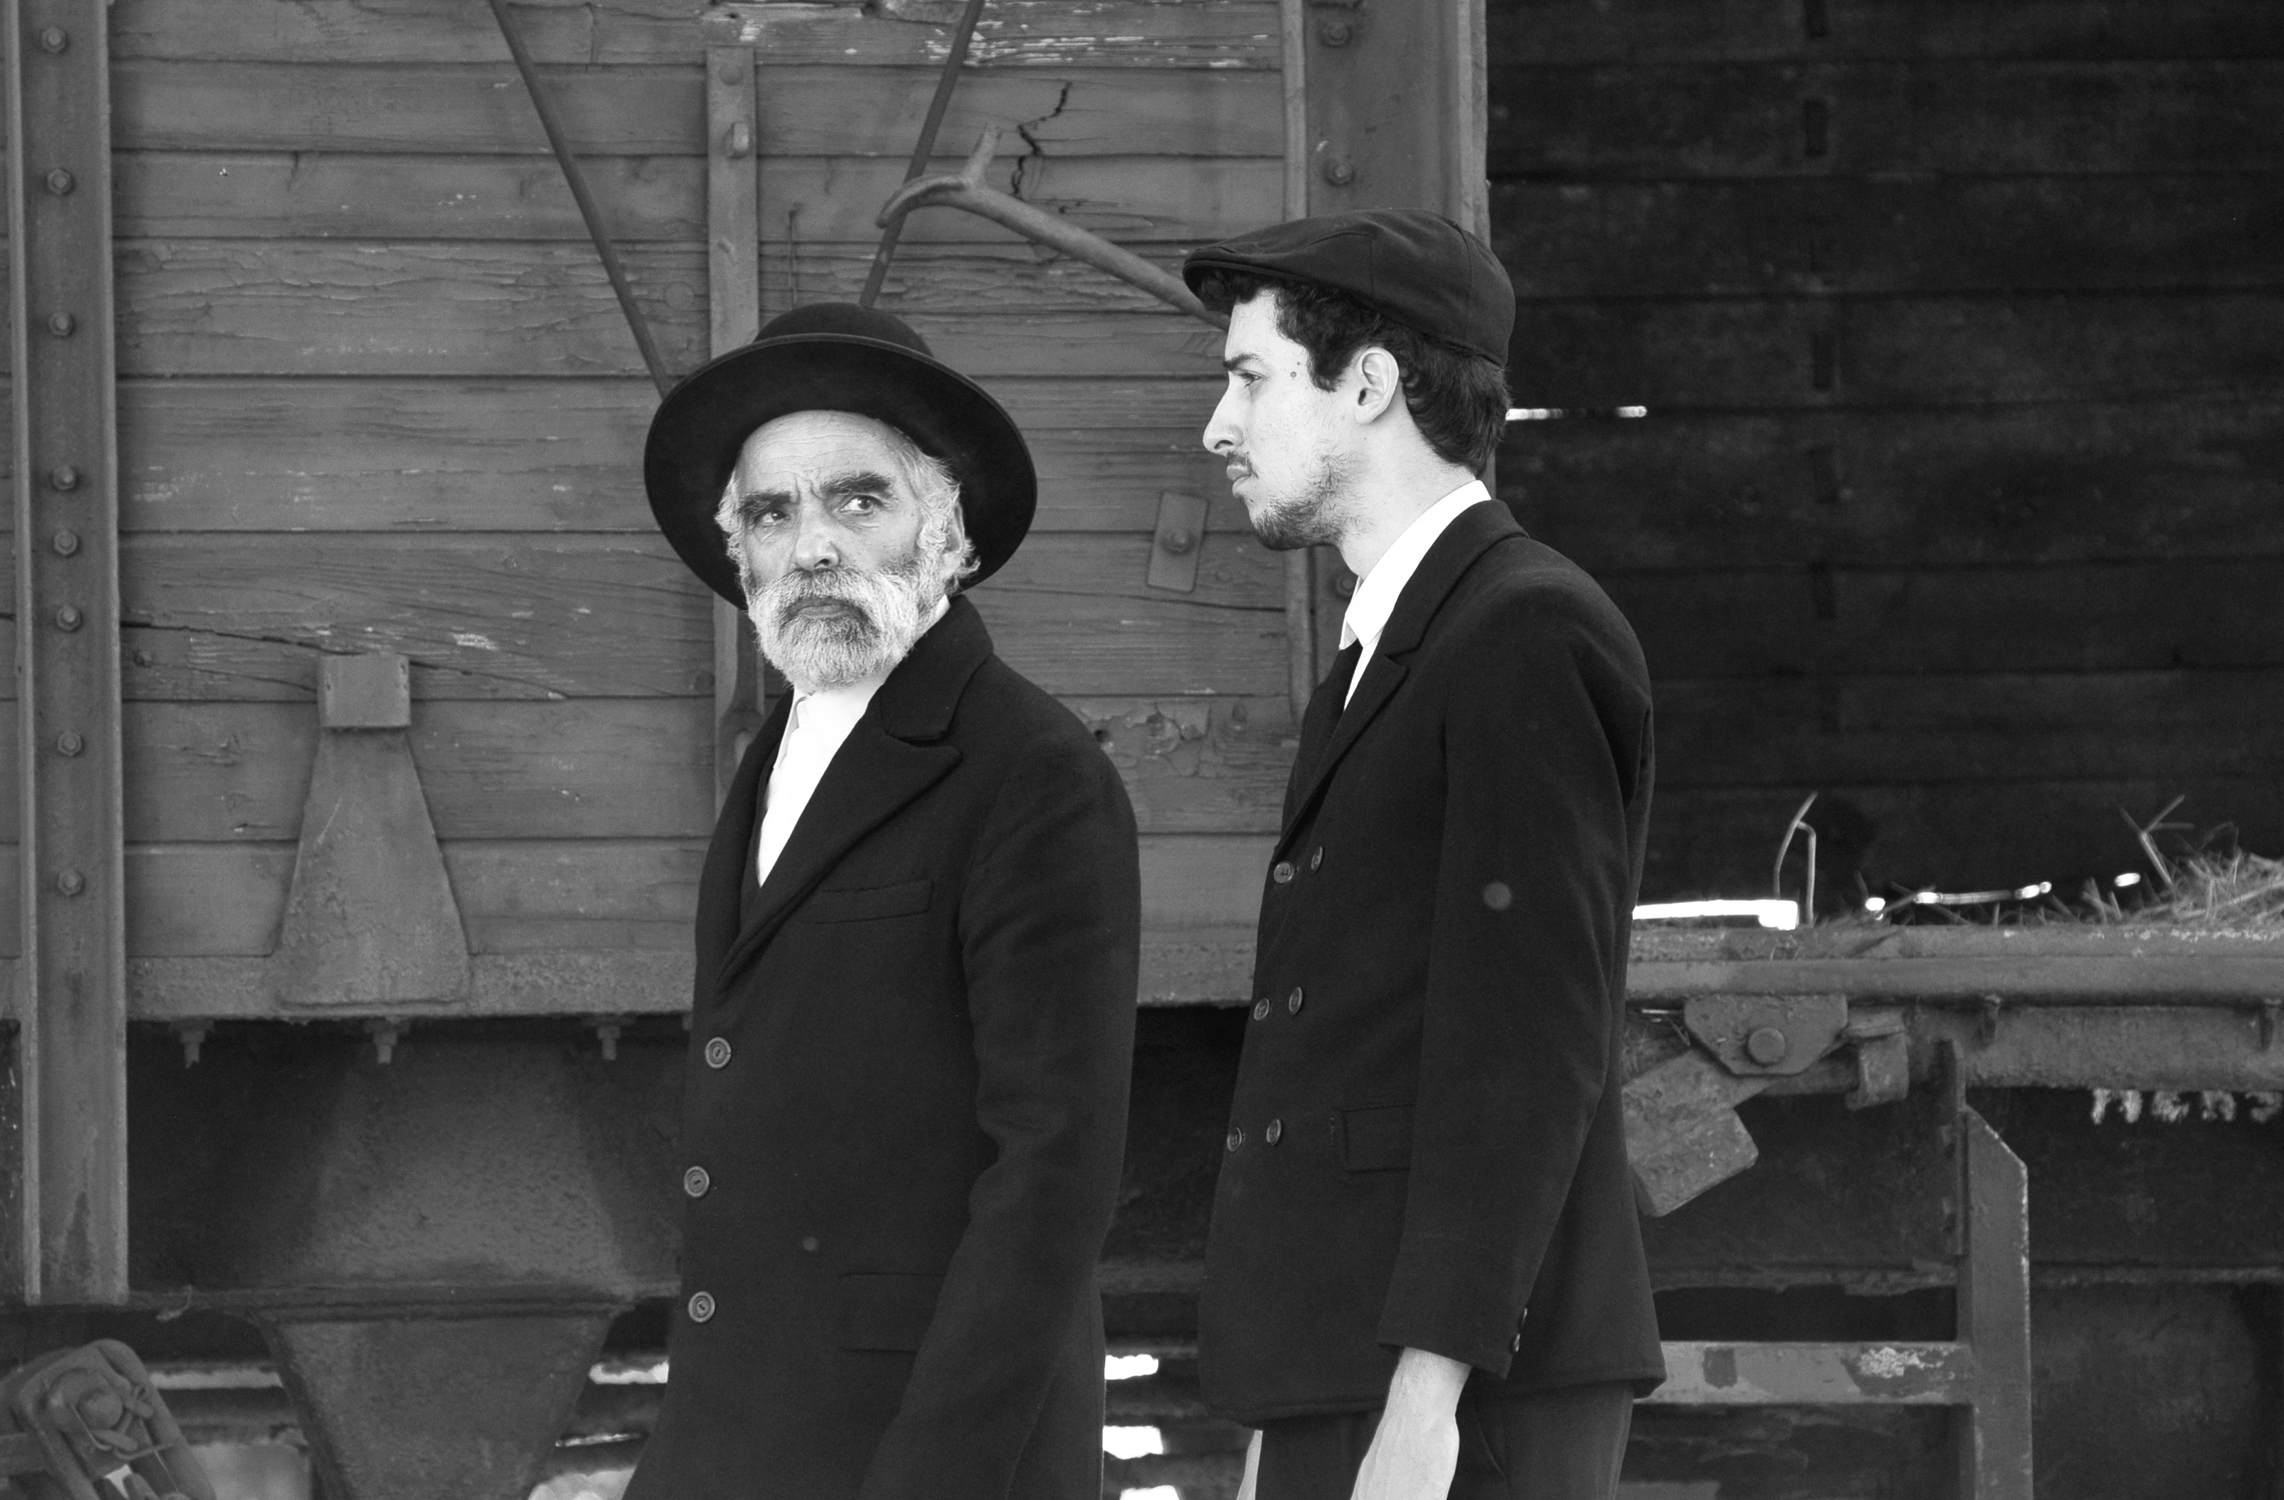 Two silent Jewish visitors turn a Hungarian town upside down by their mere presence in 1945